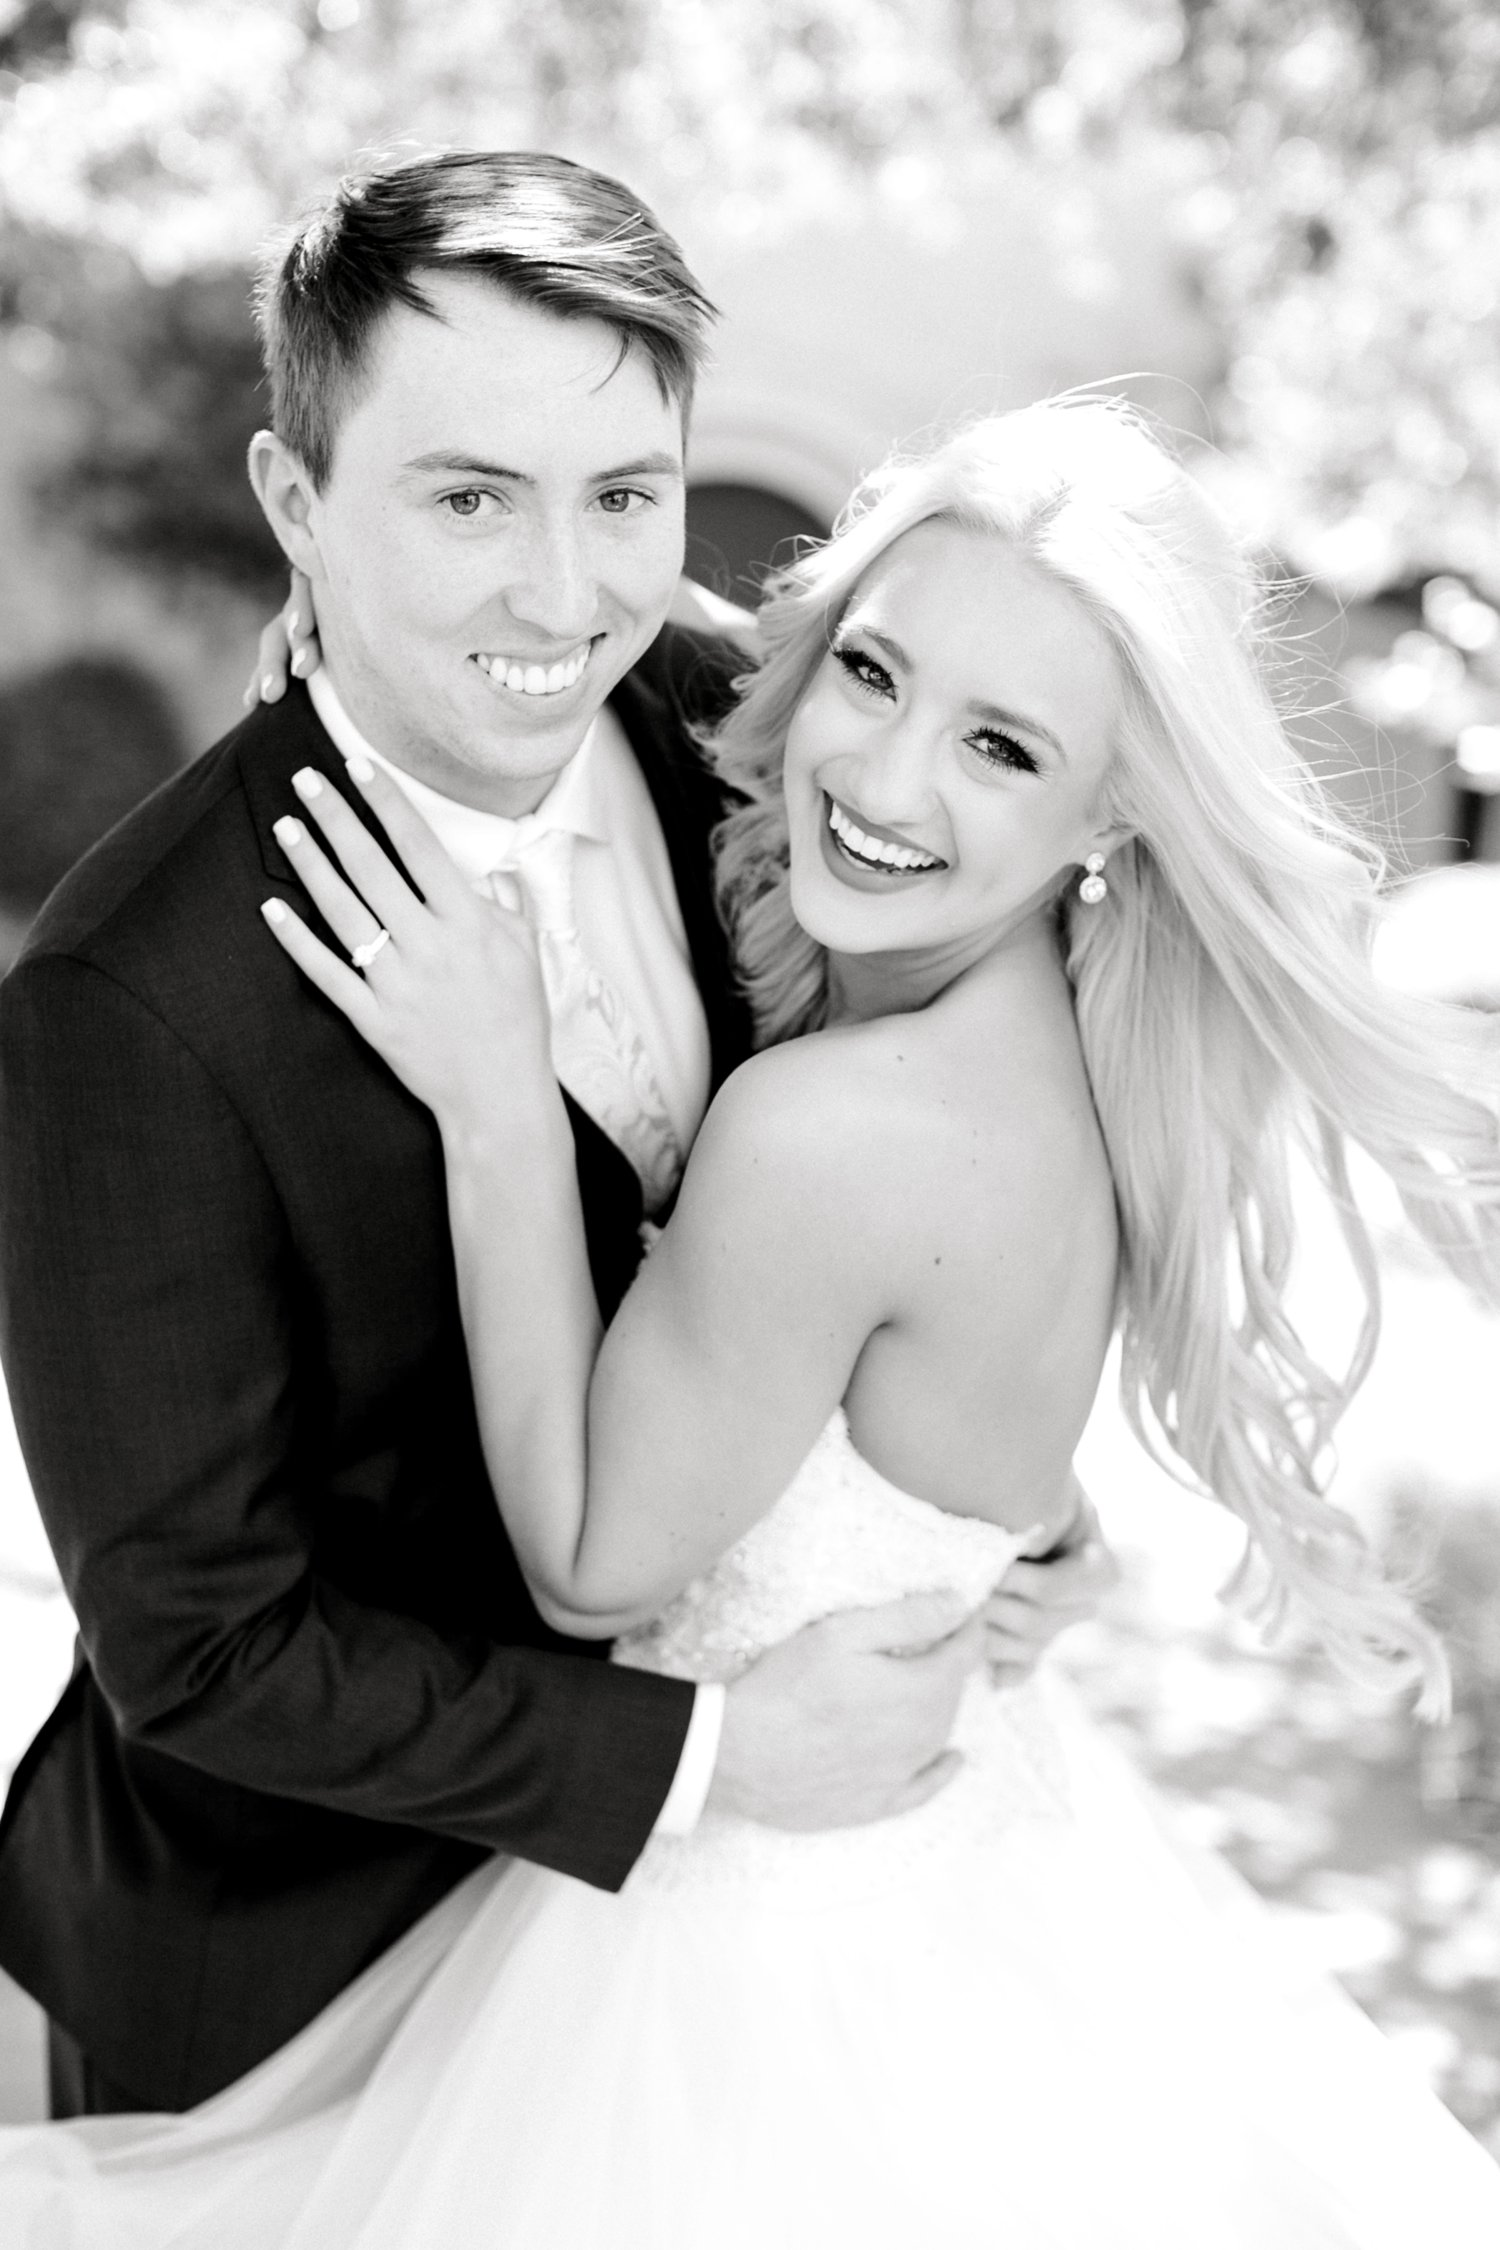 MADI_AND_WILL_STEPHENS_ALLEEJ_LUBBOCK_PHOTOGRAPHER_TEXAS+TECH+FRAZIER_ALUMNI0046.jpg